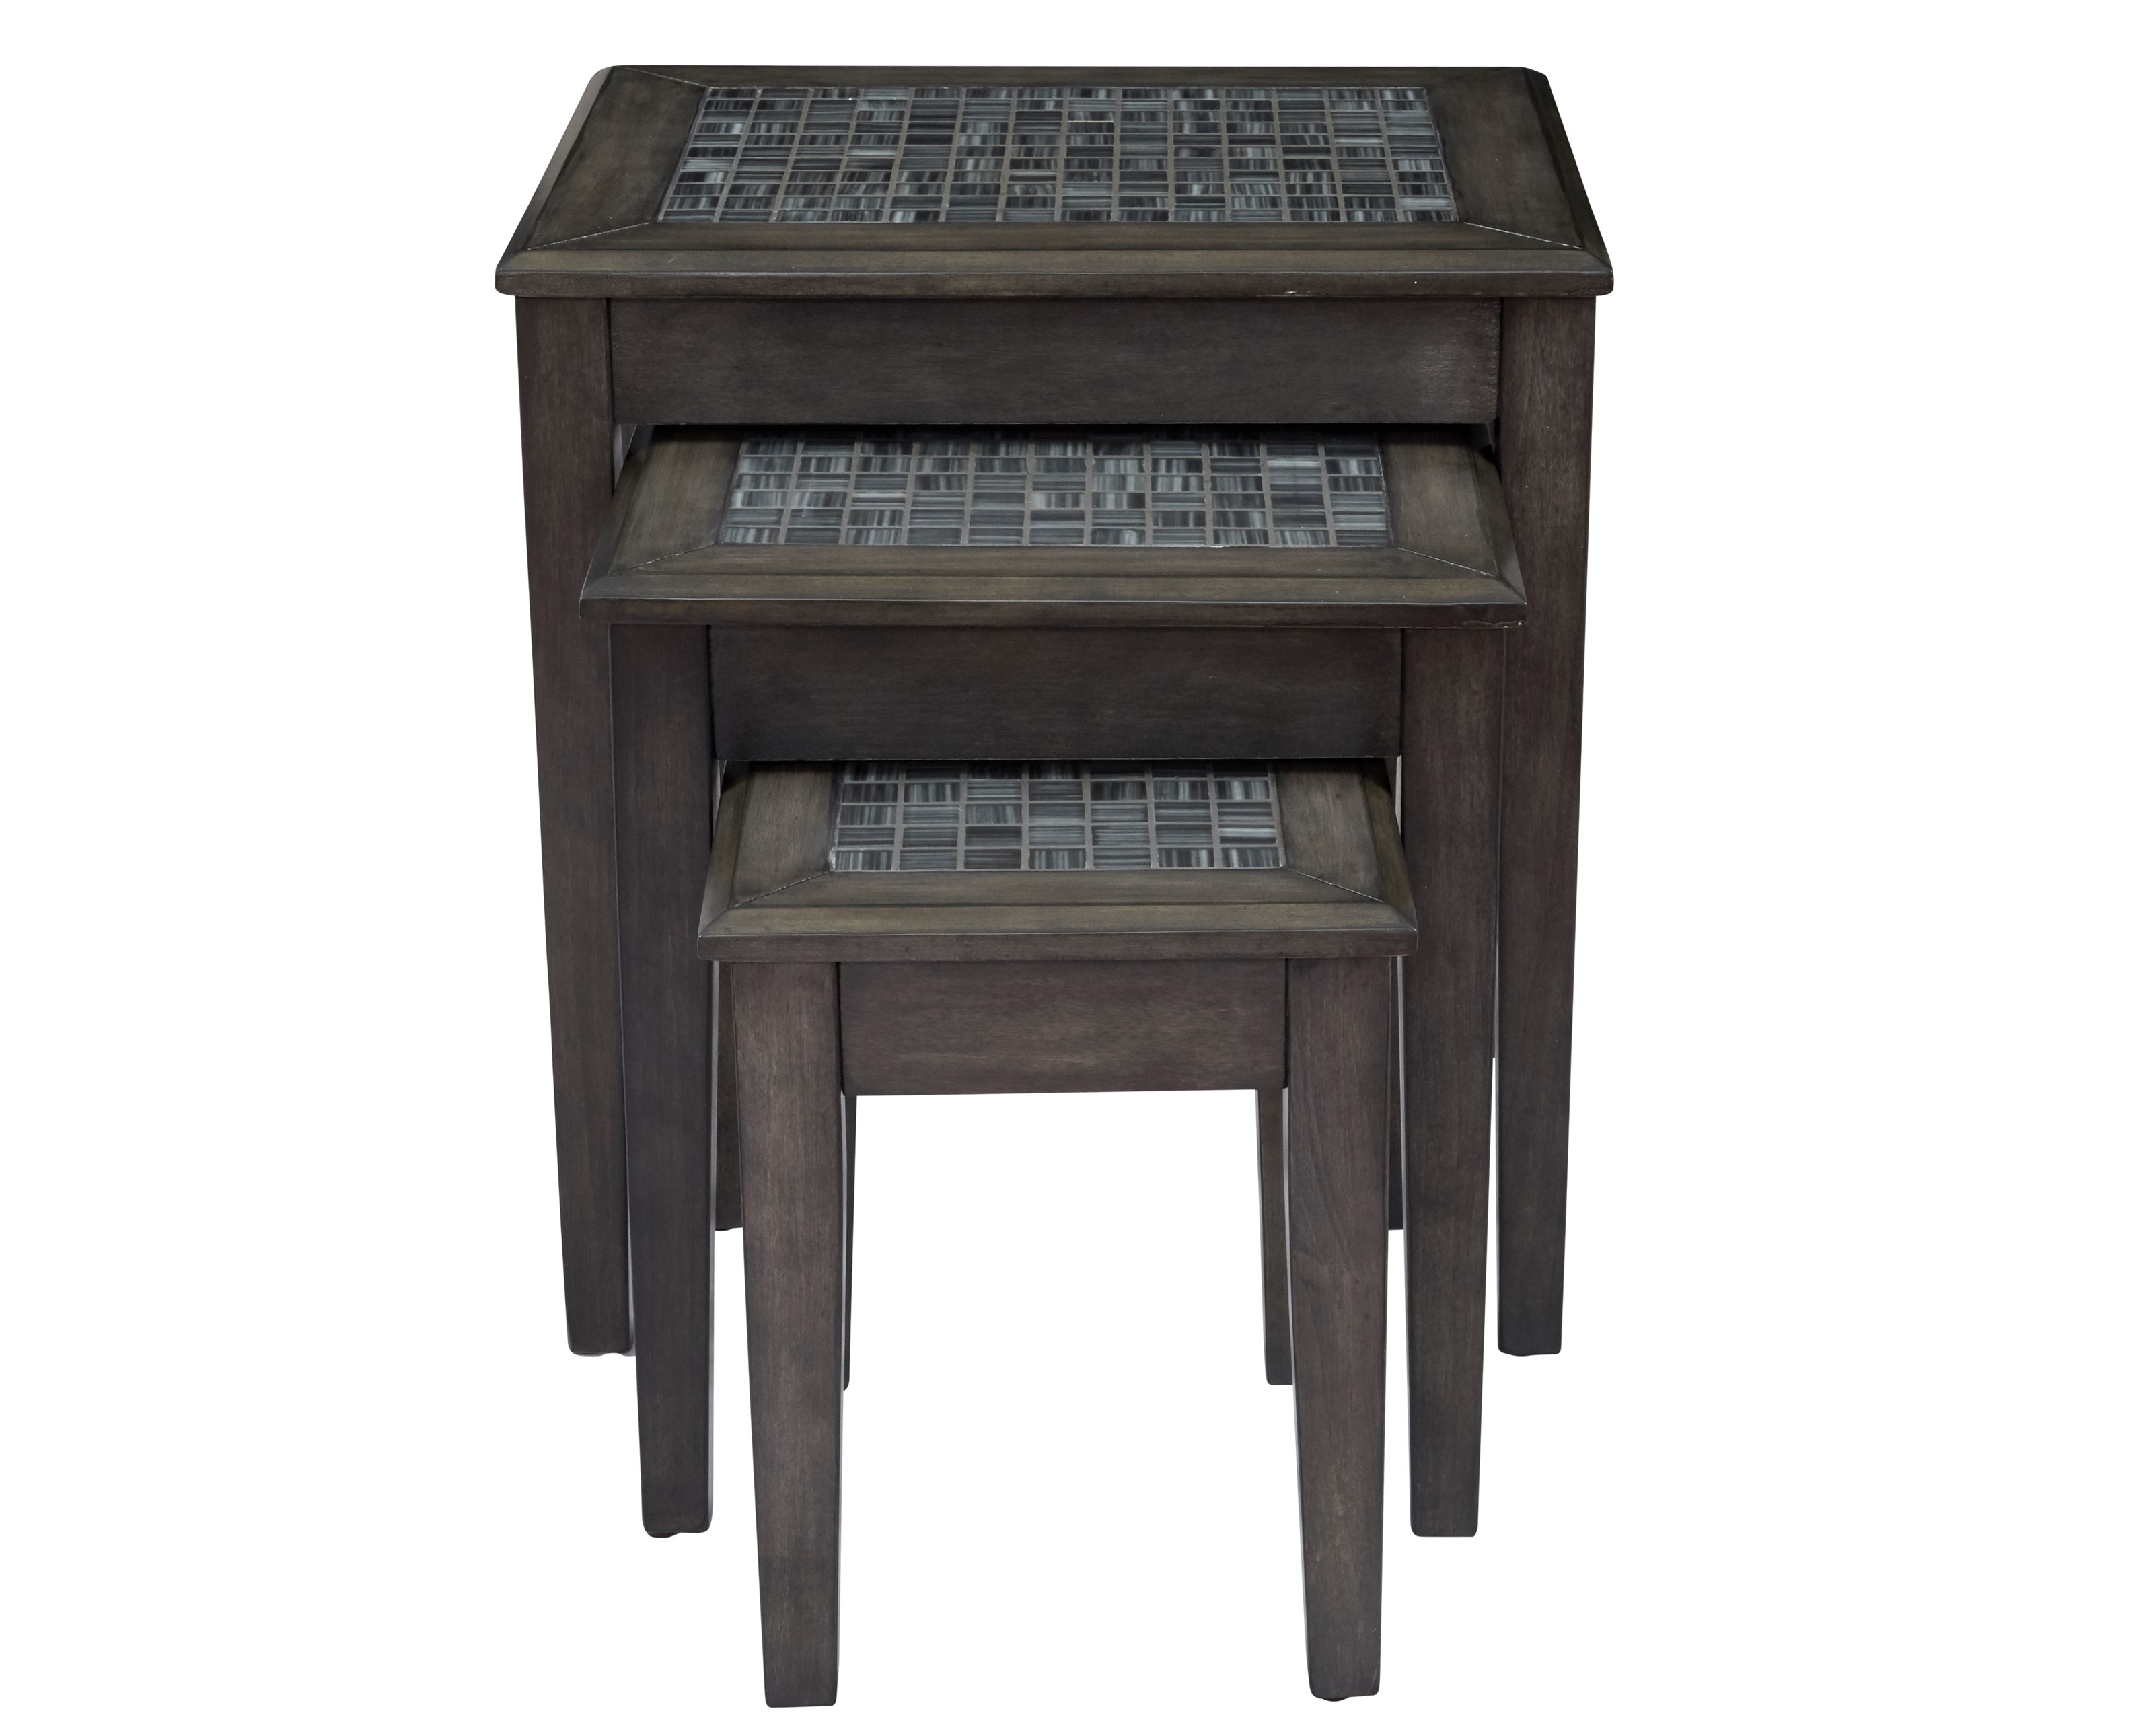 Nesting Tables - Set of 3